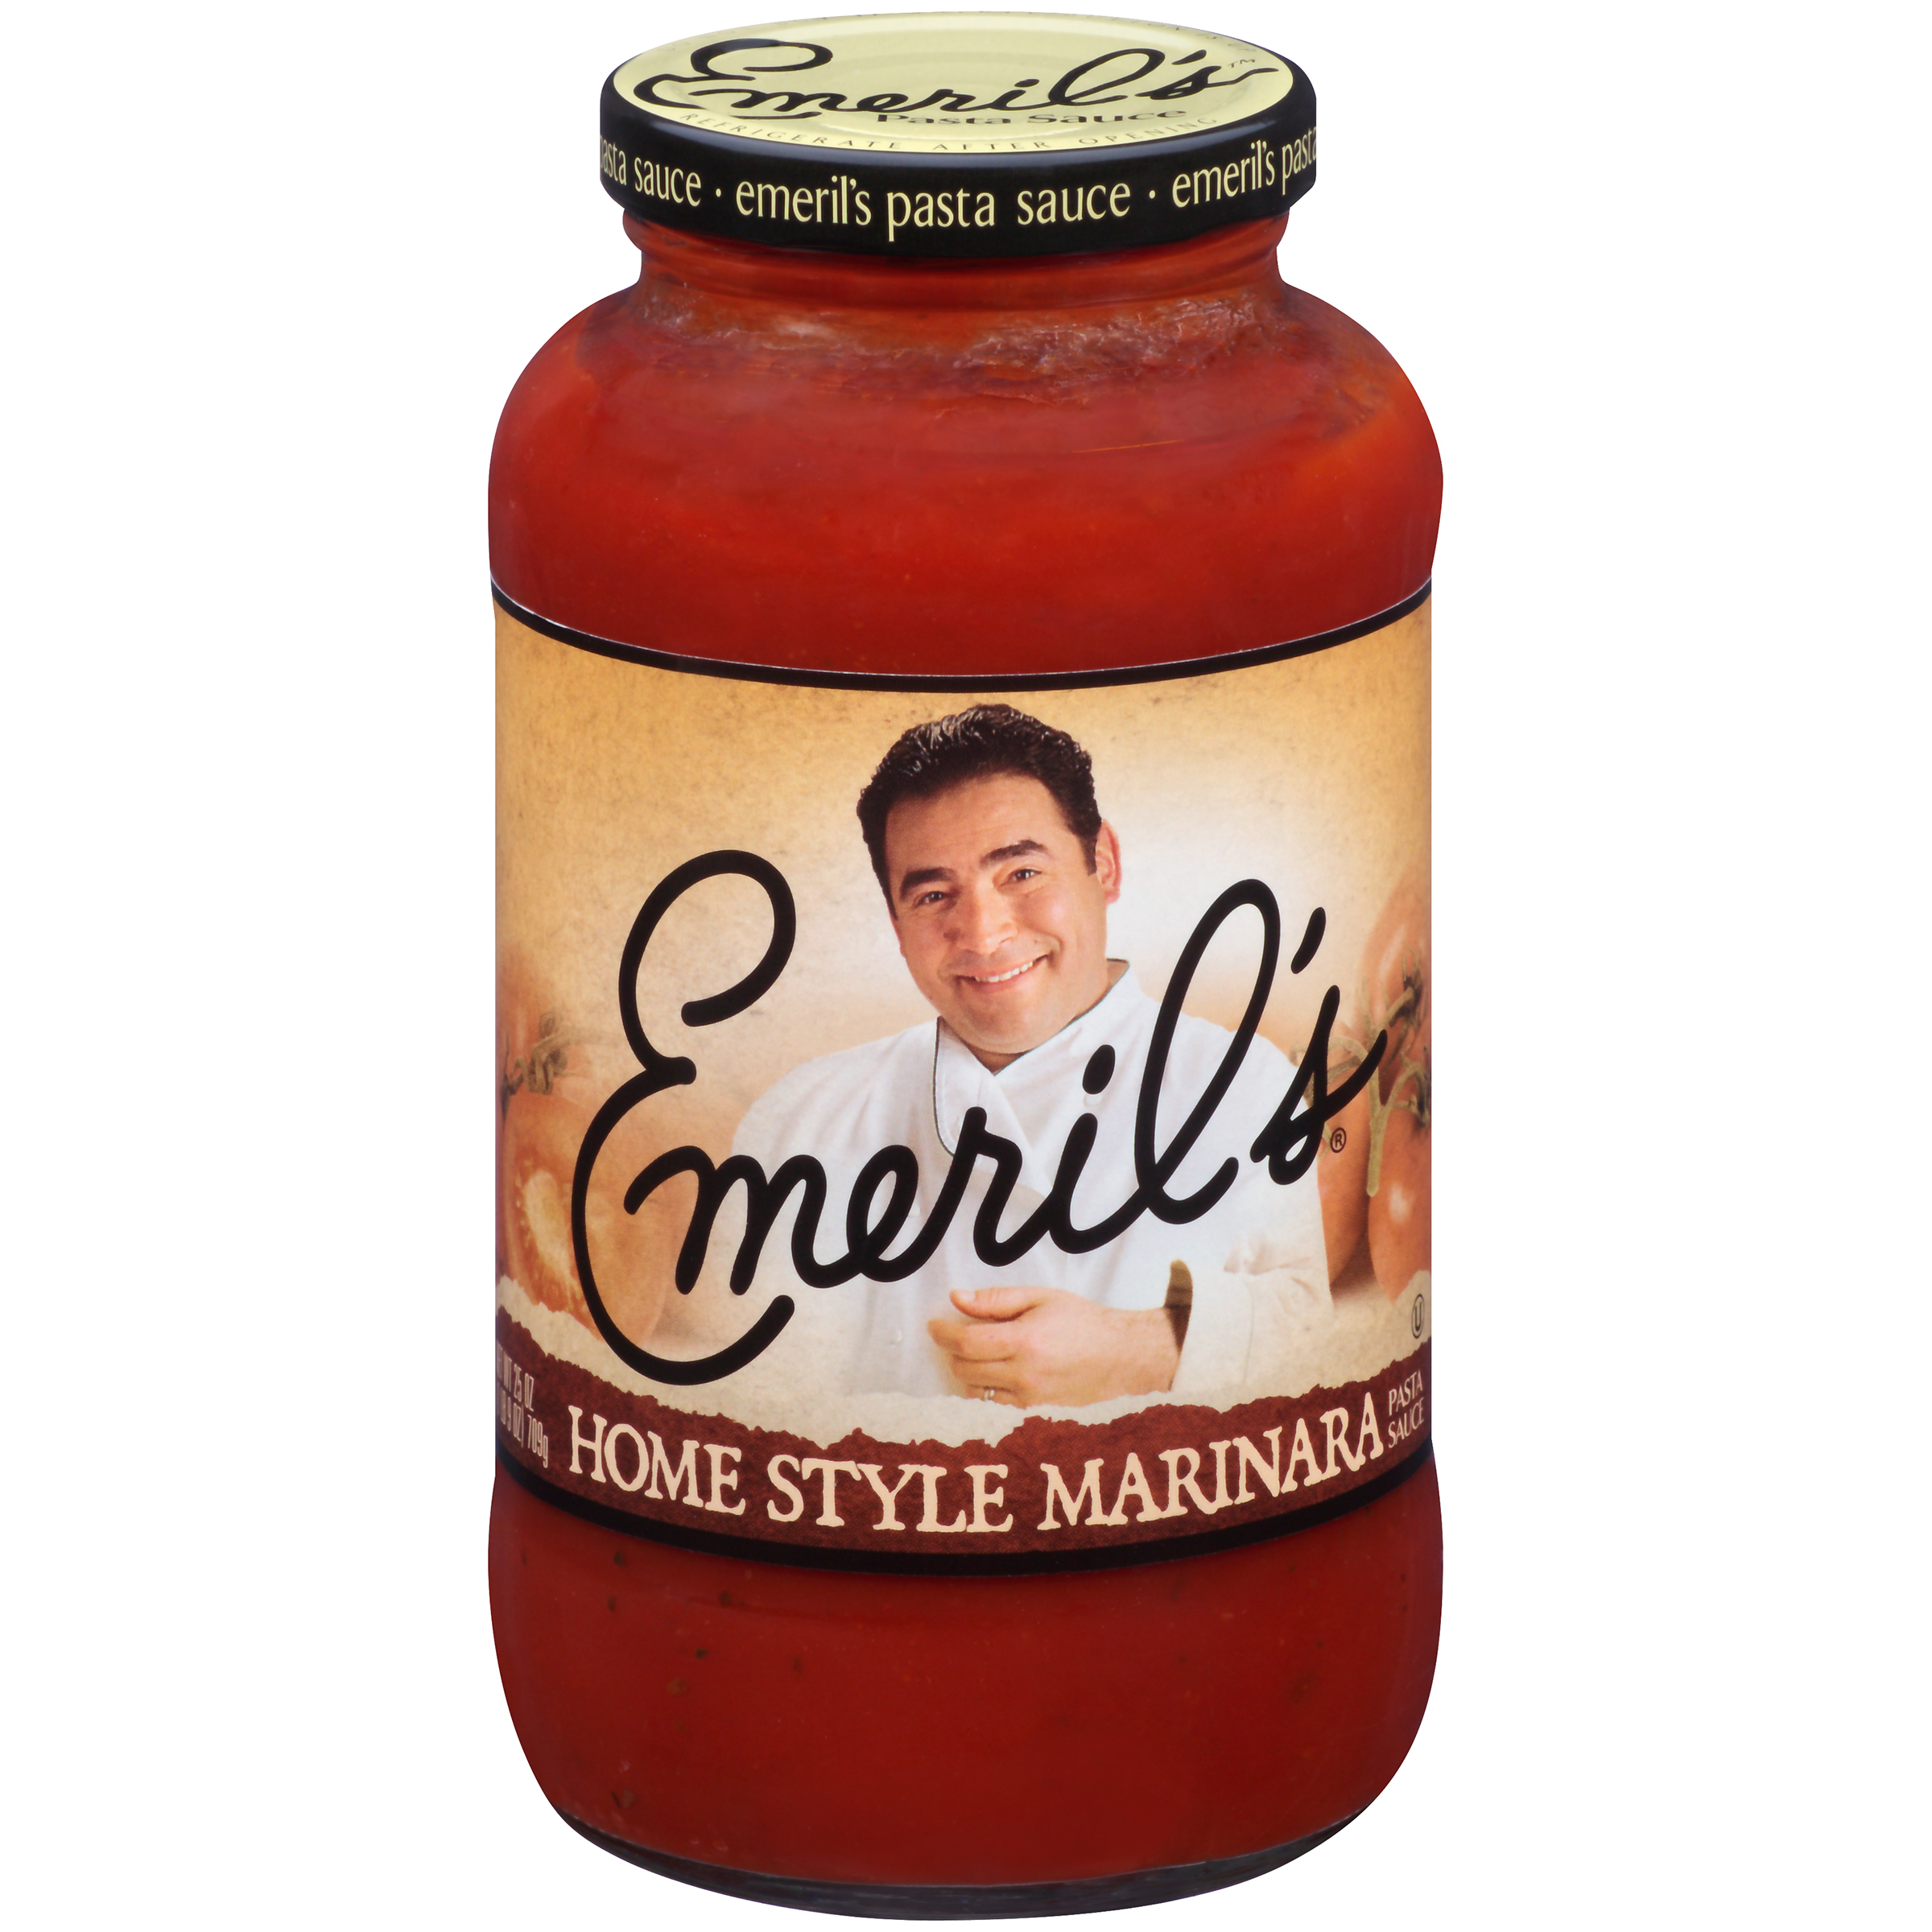 Emeril's® Home Style Marinara Pasta Sauce 25 oz. Jar